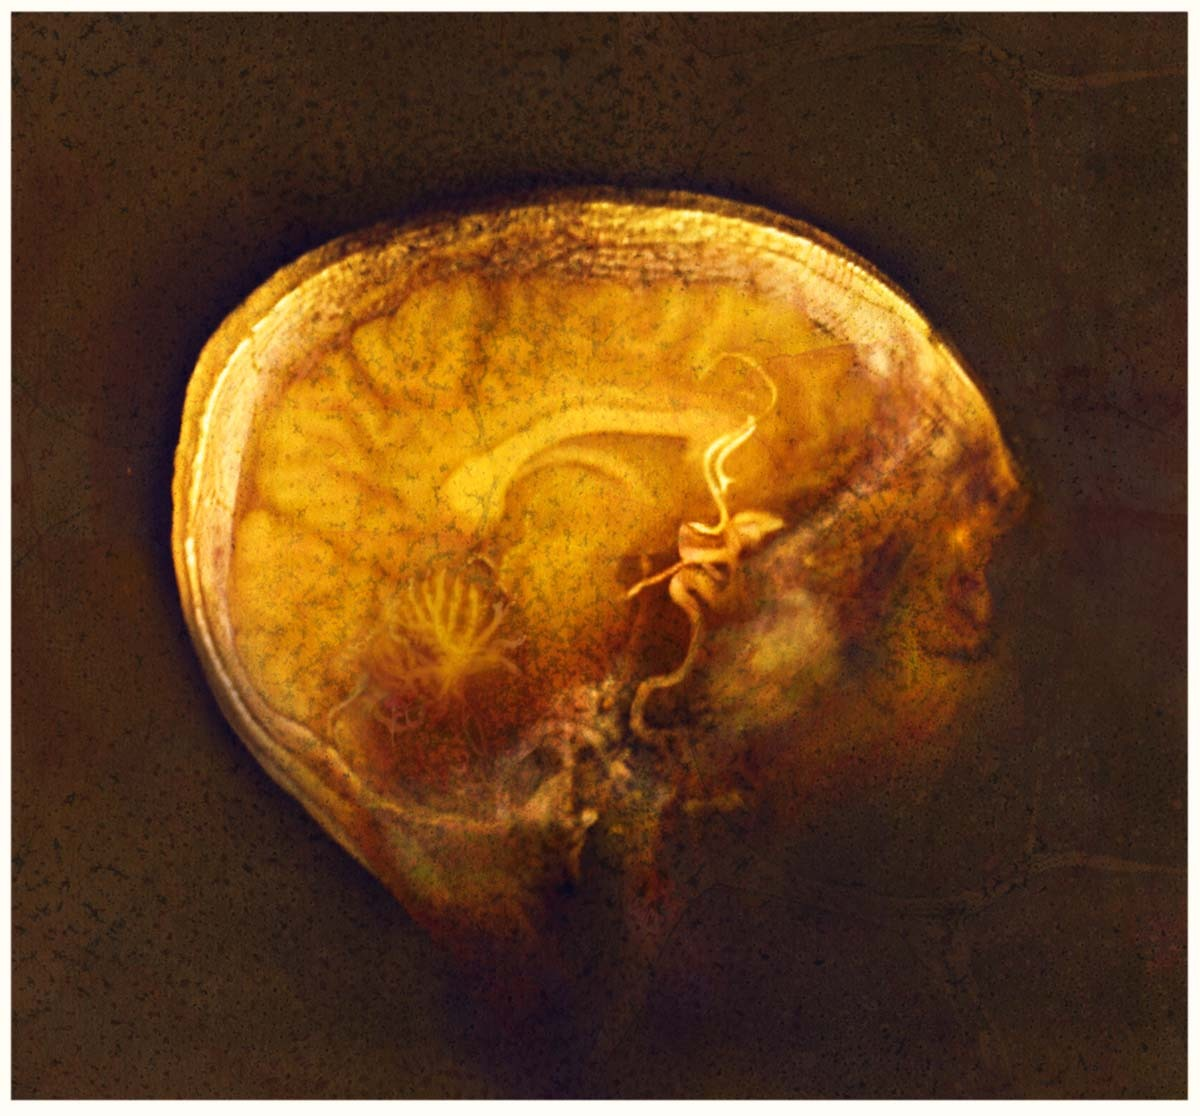 Gold-black brain with floating colors (gold Bergerac)